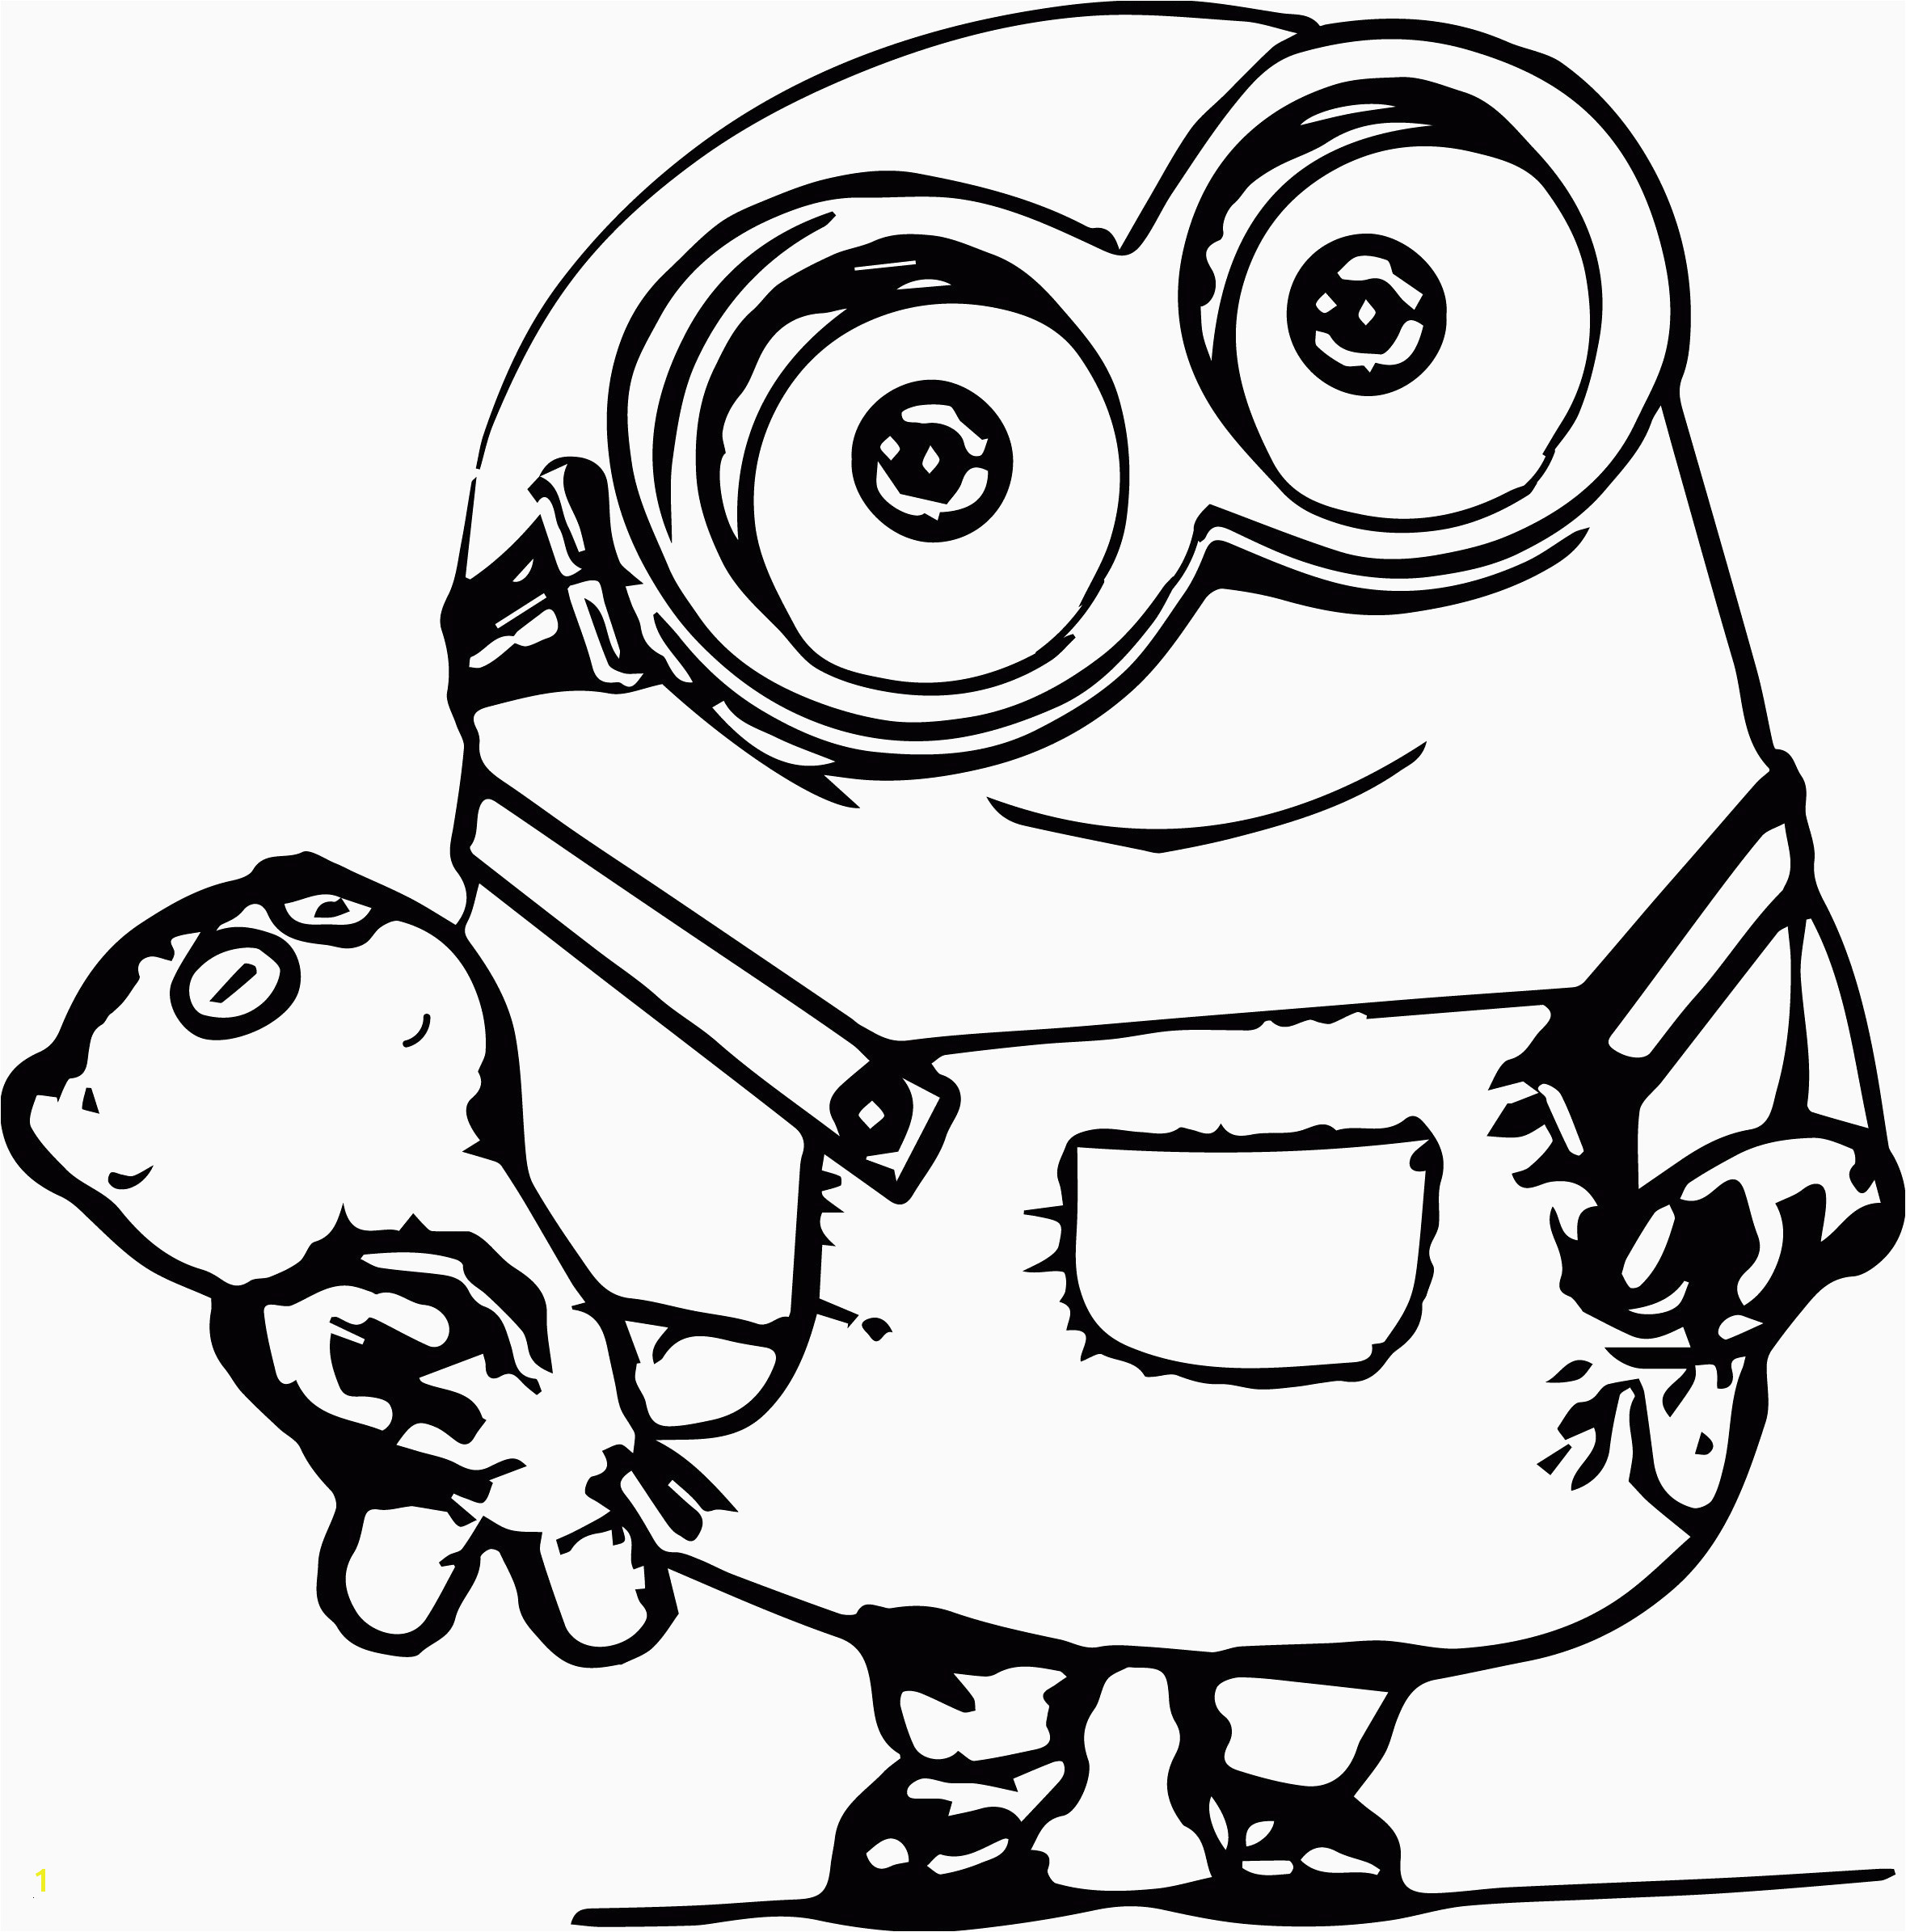 0d Archives Elegant Minions Ausmalbilder Zum Drucken Luxus Bob the Minion Coloring Pages Coloring Pages Coloring Pages Genial